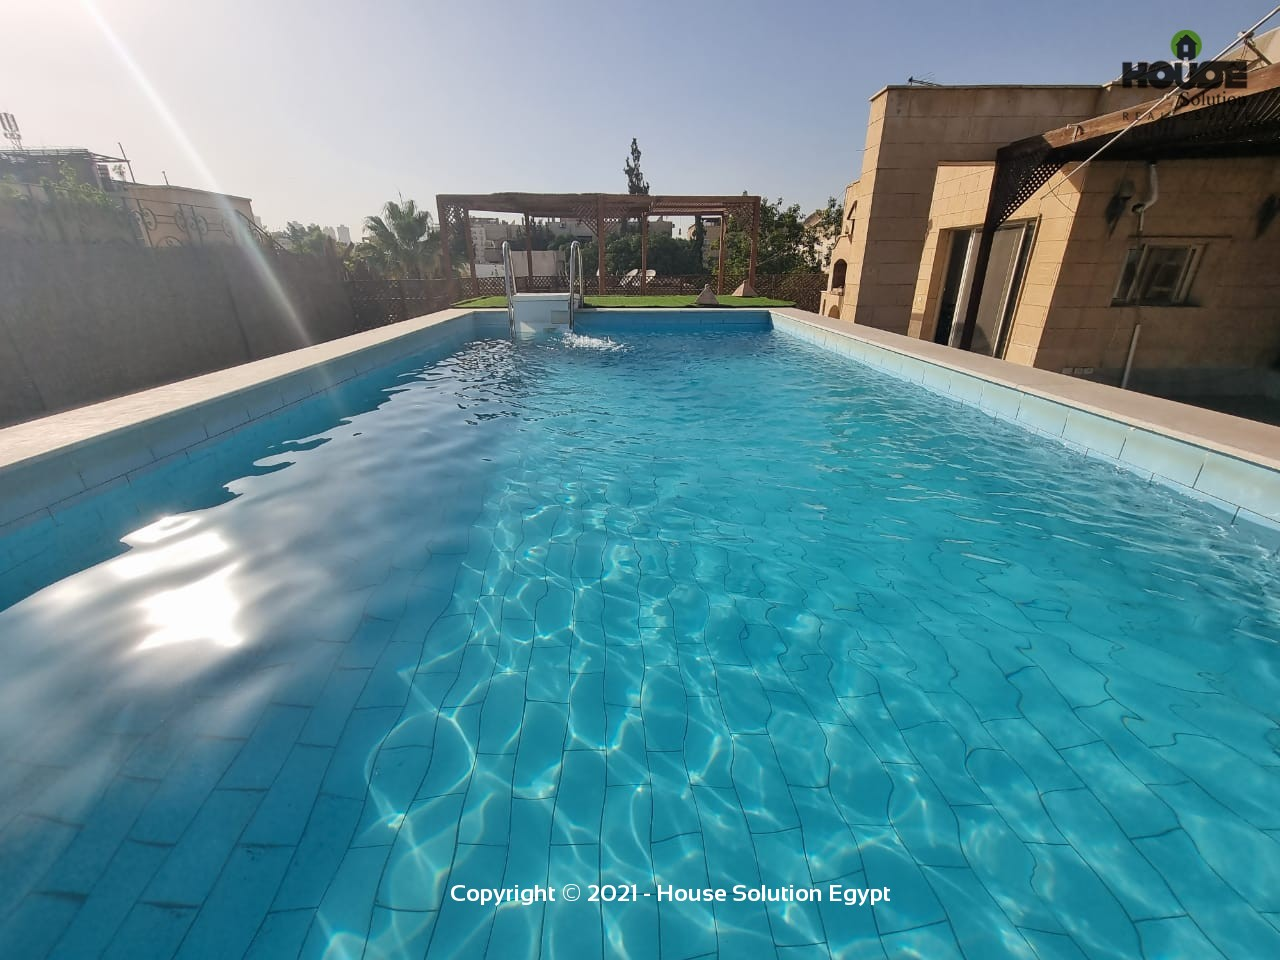 Spacious Penthouse Duplex With Swimming Pool For Rent In Sarayat El Maadi  - 5031 Featured Image